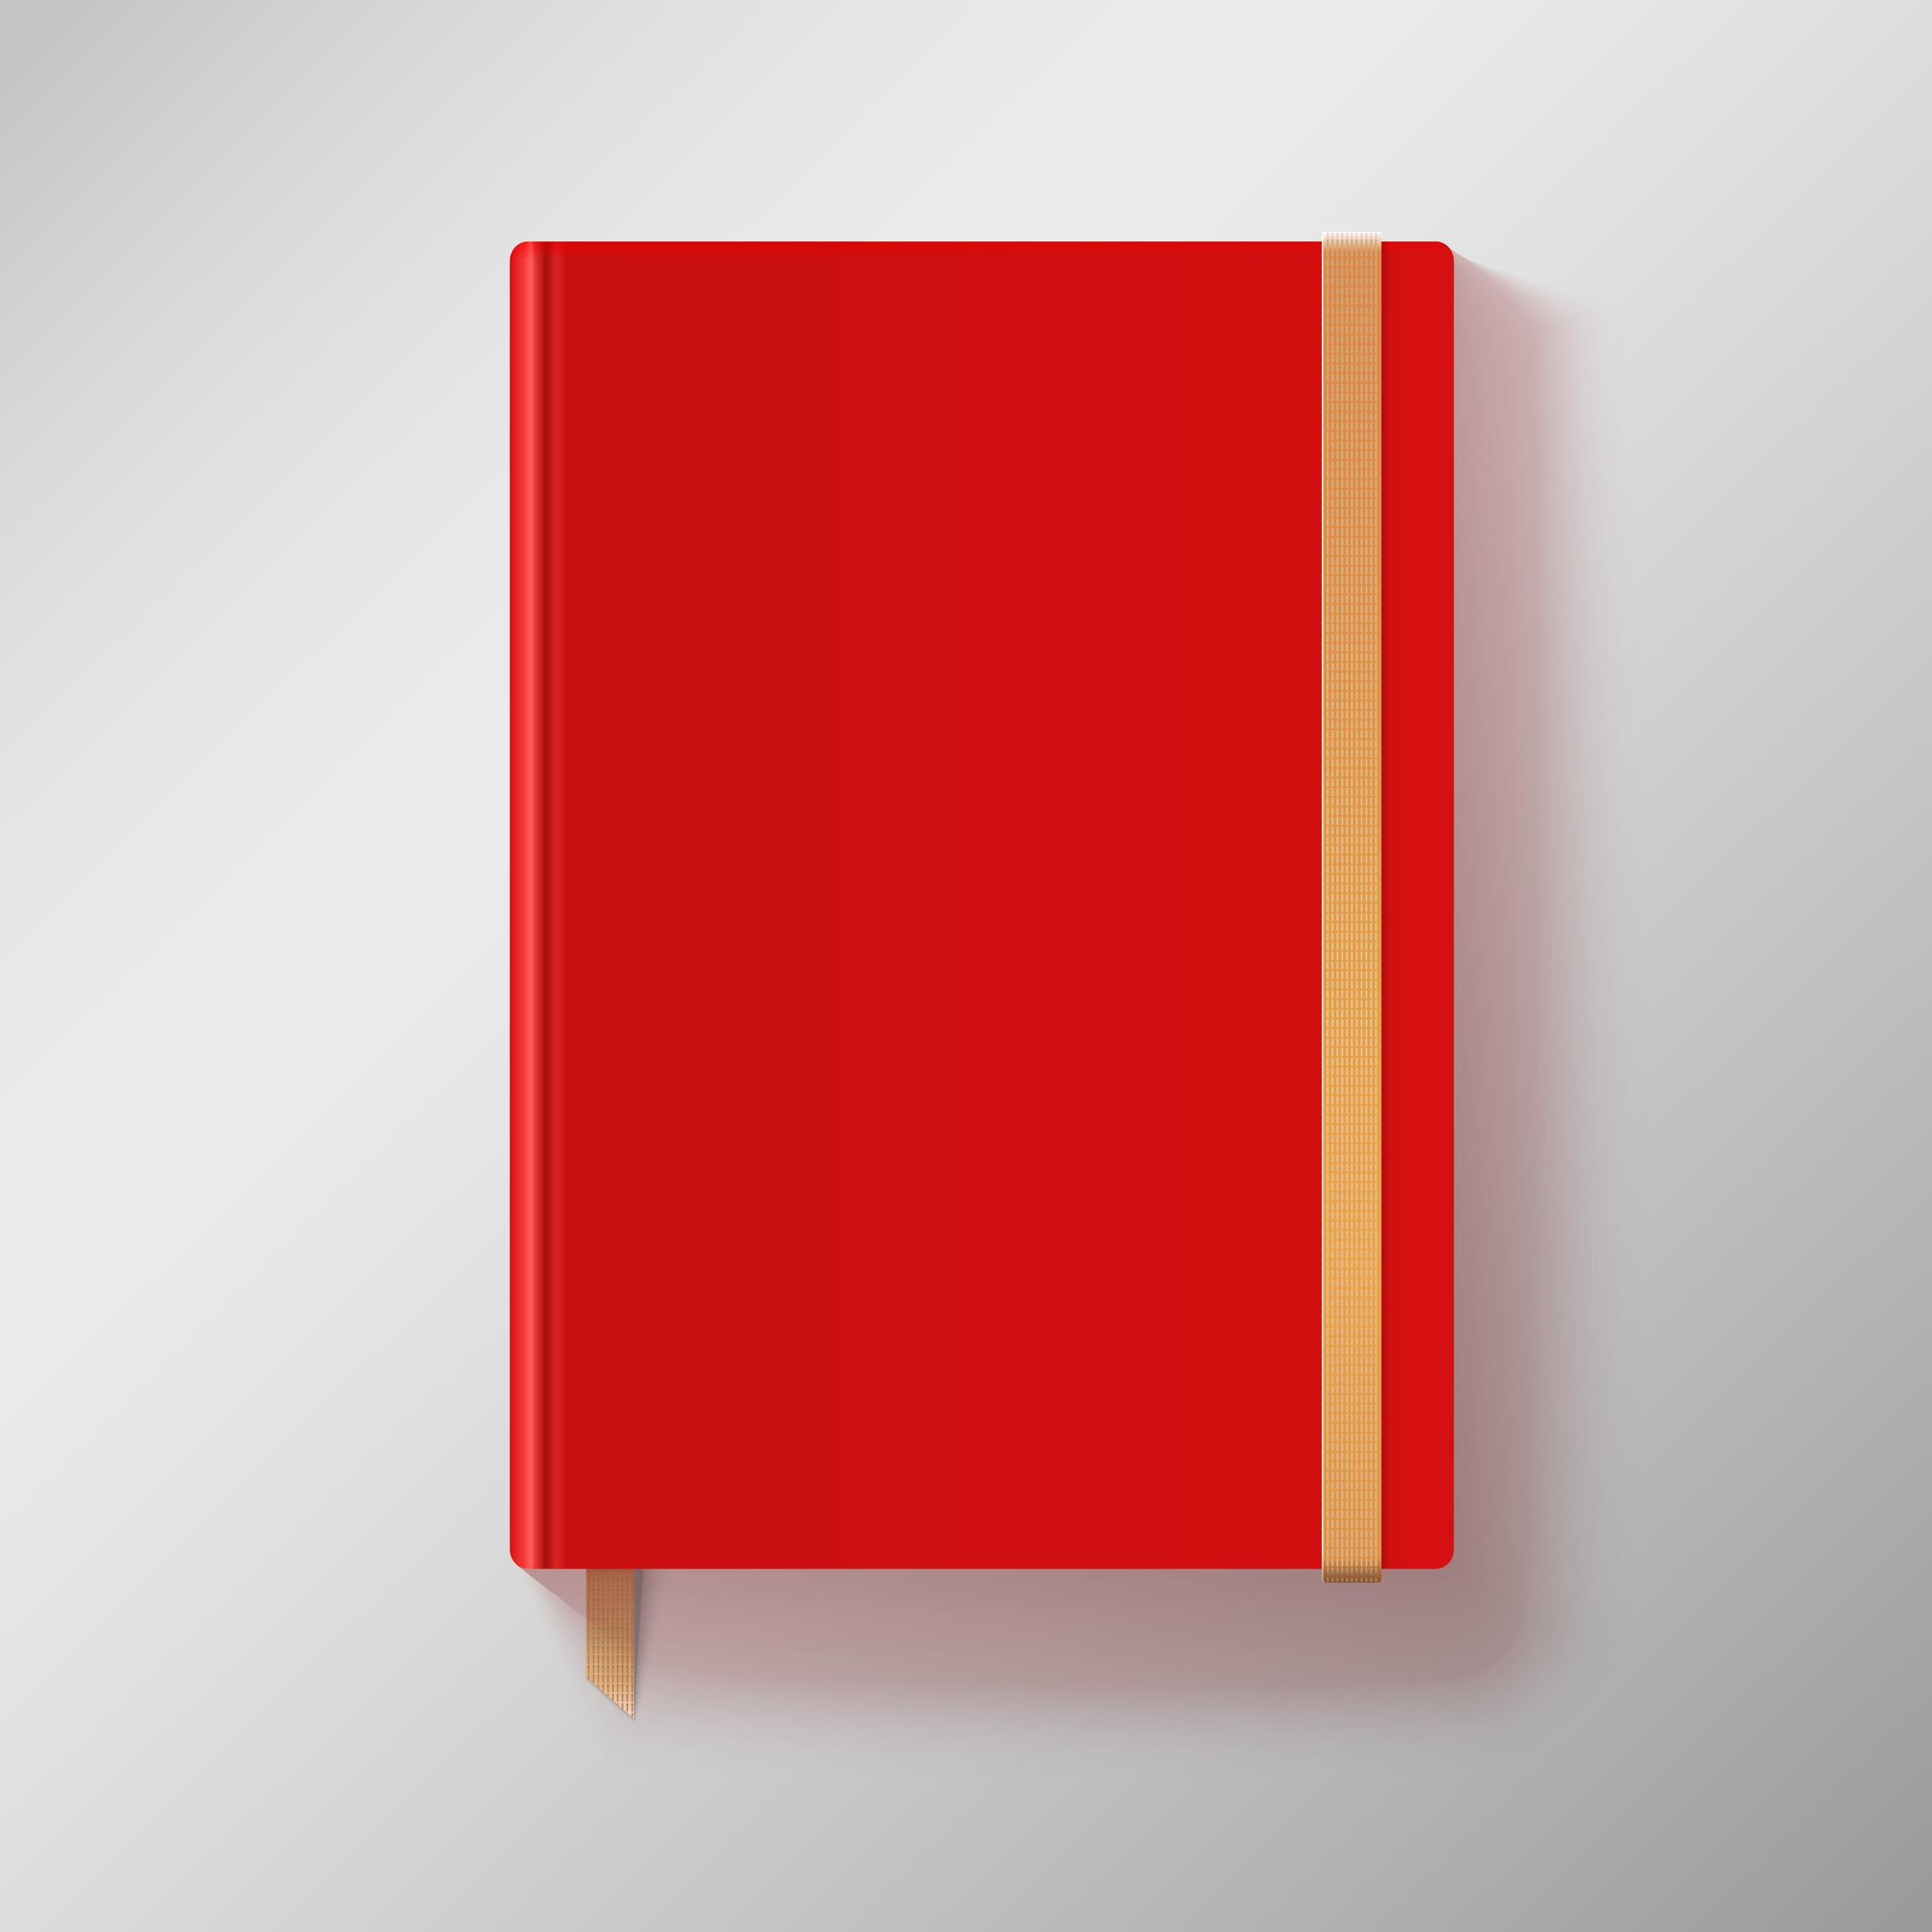 Red copybook with elastic band and gold bookmark.